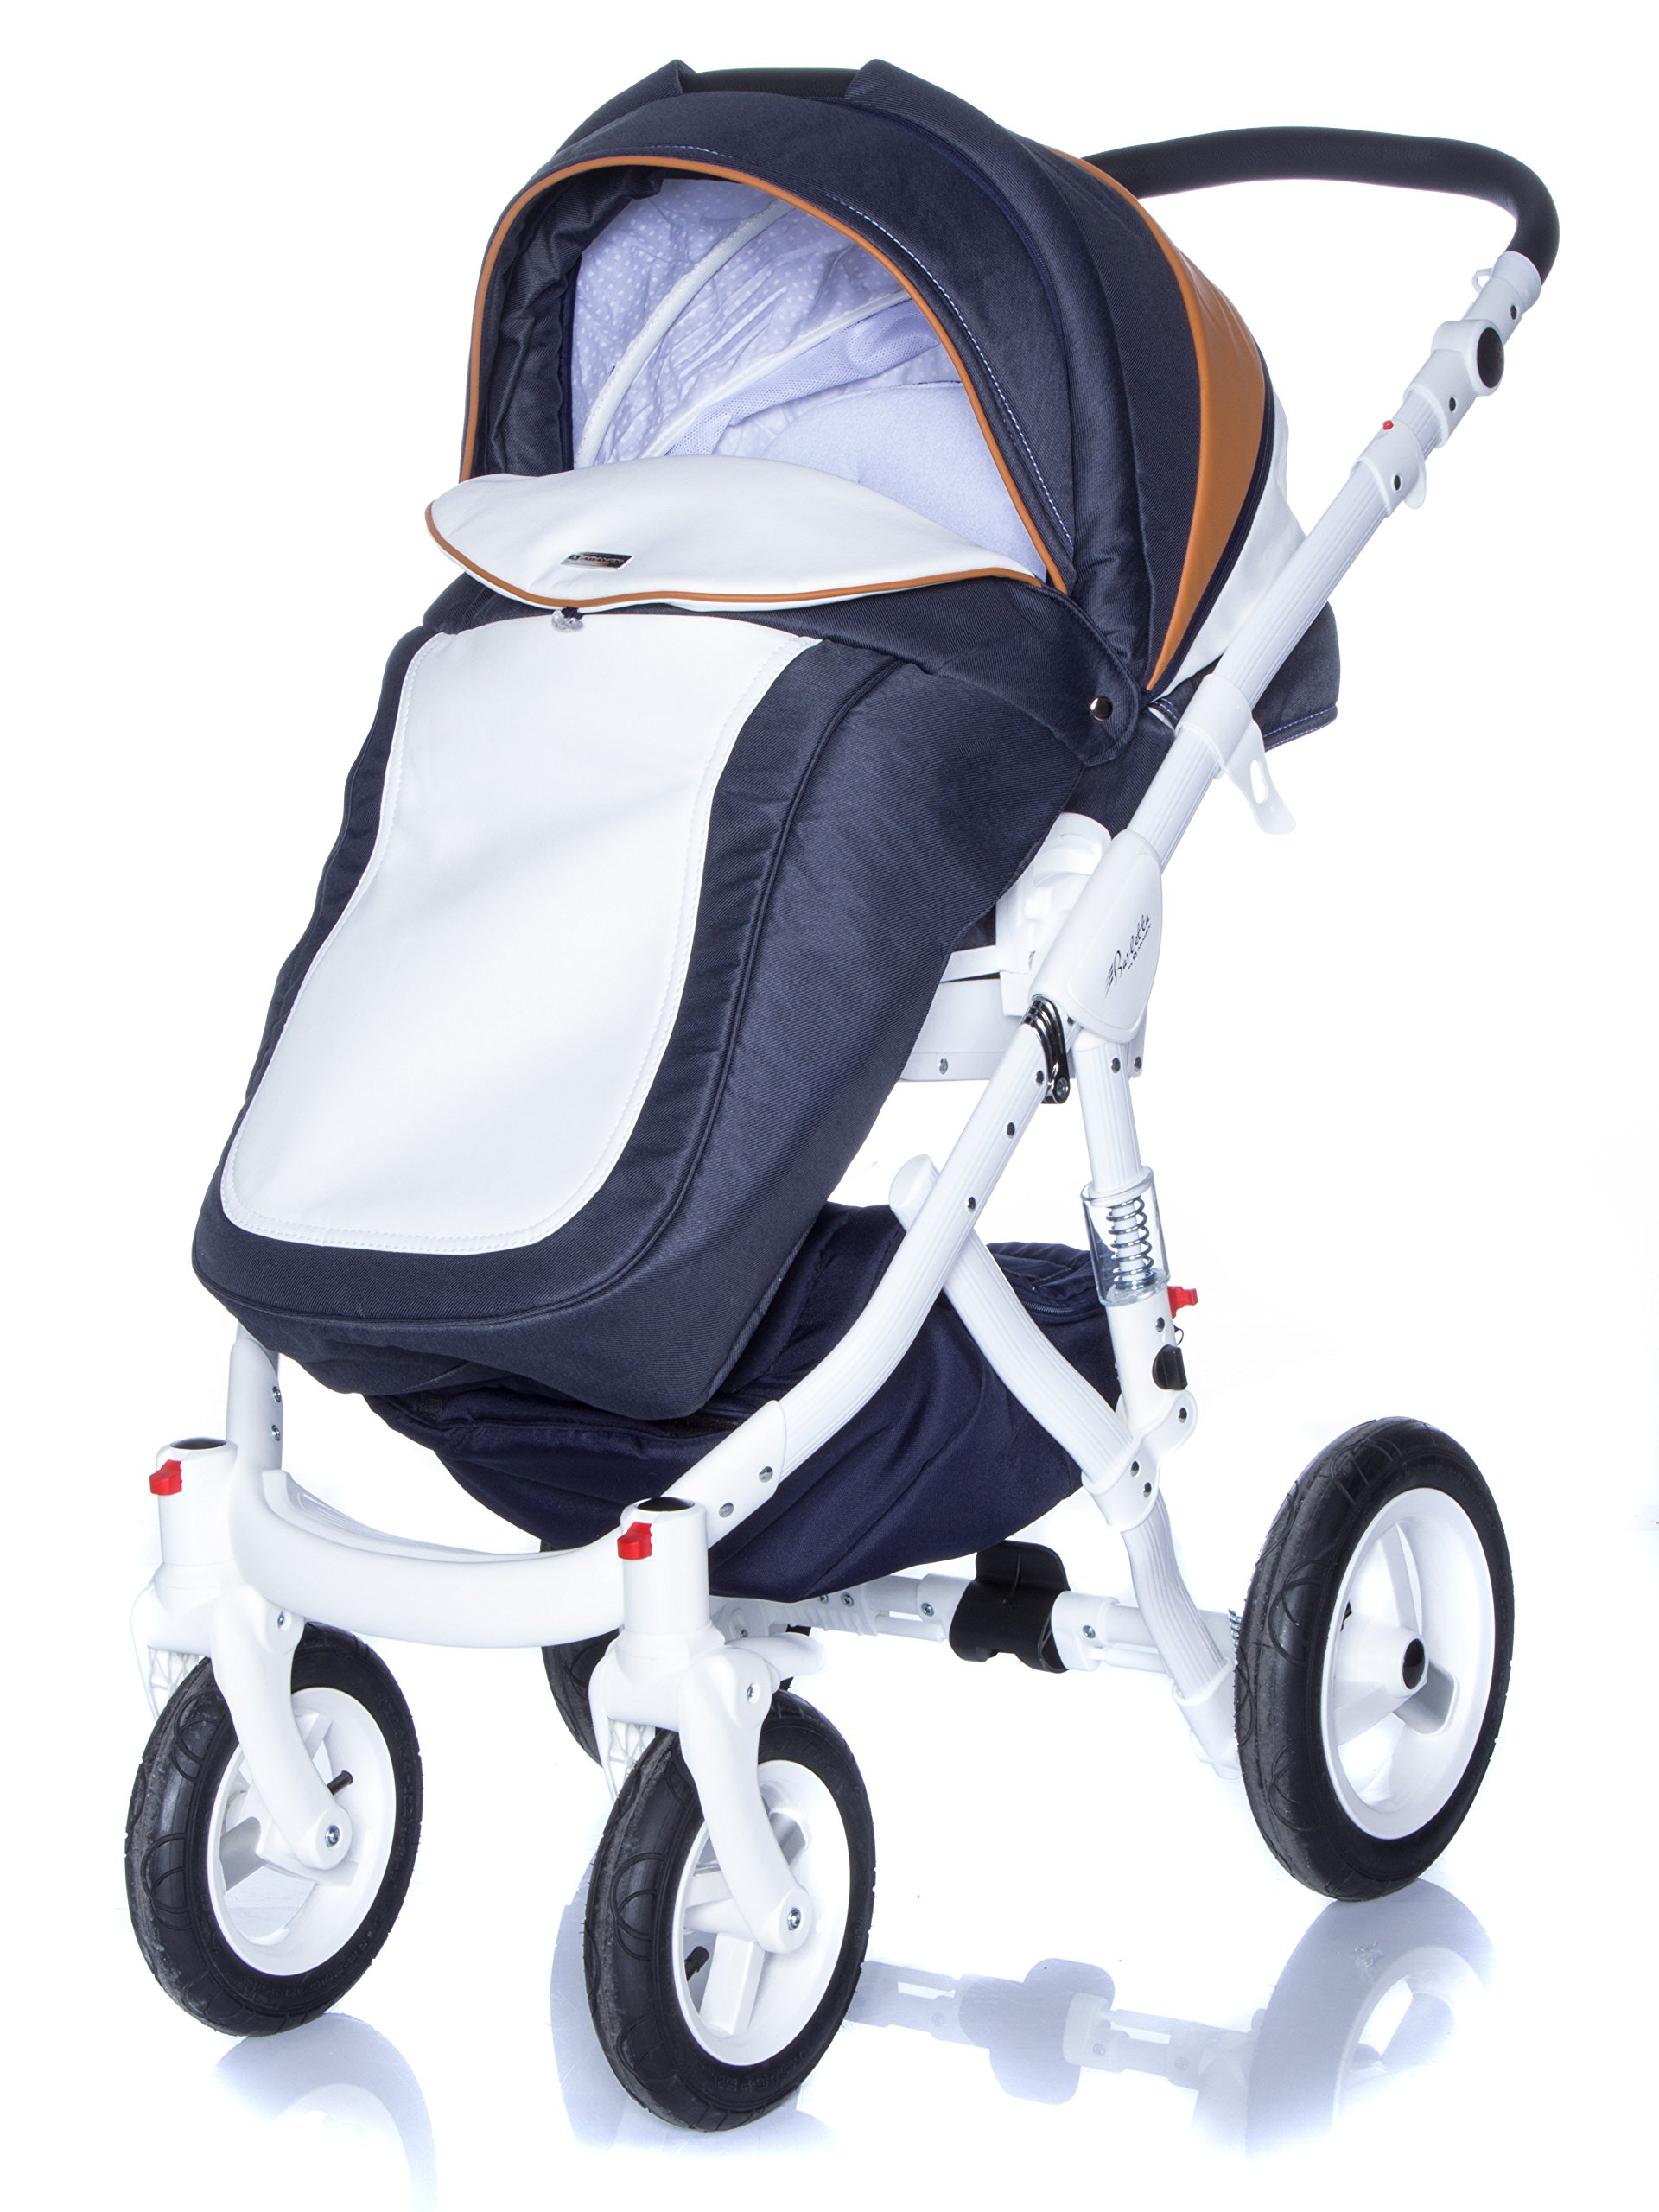 Baby Pram Pushchair Stroller Buggy, Travel System Adamex Barletta New B7 Fox-Navy-White 2in1 + ADAPTORS for CAR Seats: Maxi-COSI CYBEX KIDDY Be Safe Adamex Lockable swivel wheels and lockable side suspension system Light alluminium chassis with polyurethane wheels 2 separate modules + car seats adapters - big and deep baby tub functional sport seat and car seats adapters that can be attached to the following car seats: Maxi-Cosi: City, Cabrio fix, Pebble Cybex: Aton Kiddy: Evoluna i-Size, Evolution Pro 2 Be Safe: iZi Go 5